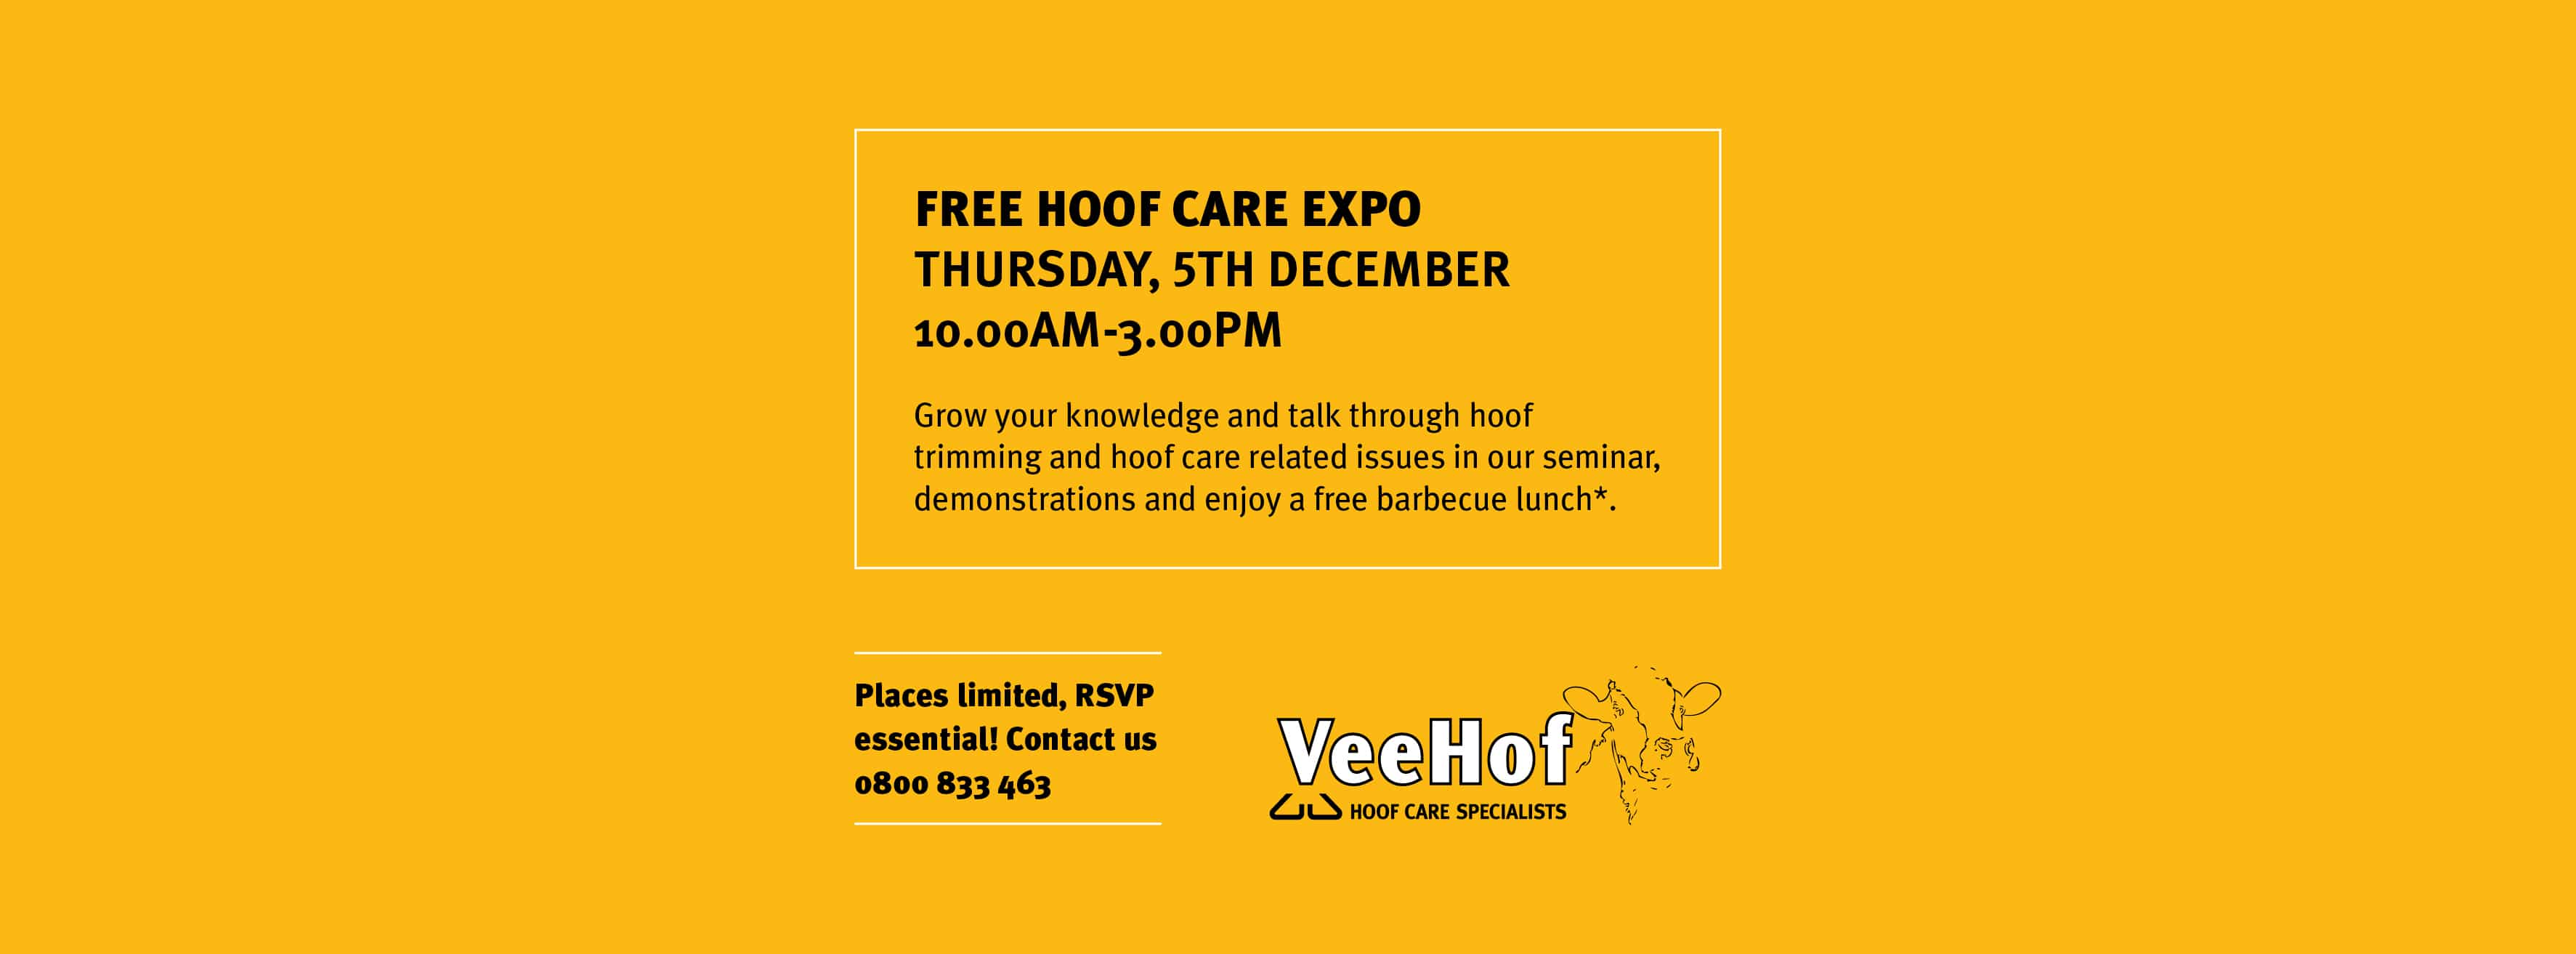 Veehof-Expo-Collateral-updates-JFM4809-v2.1-lowres